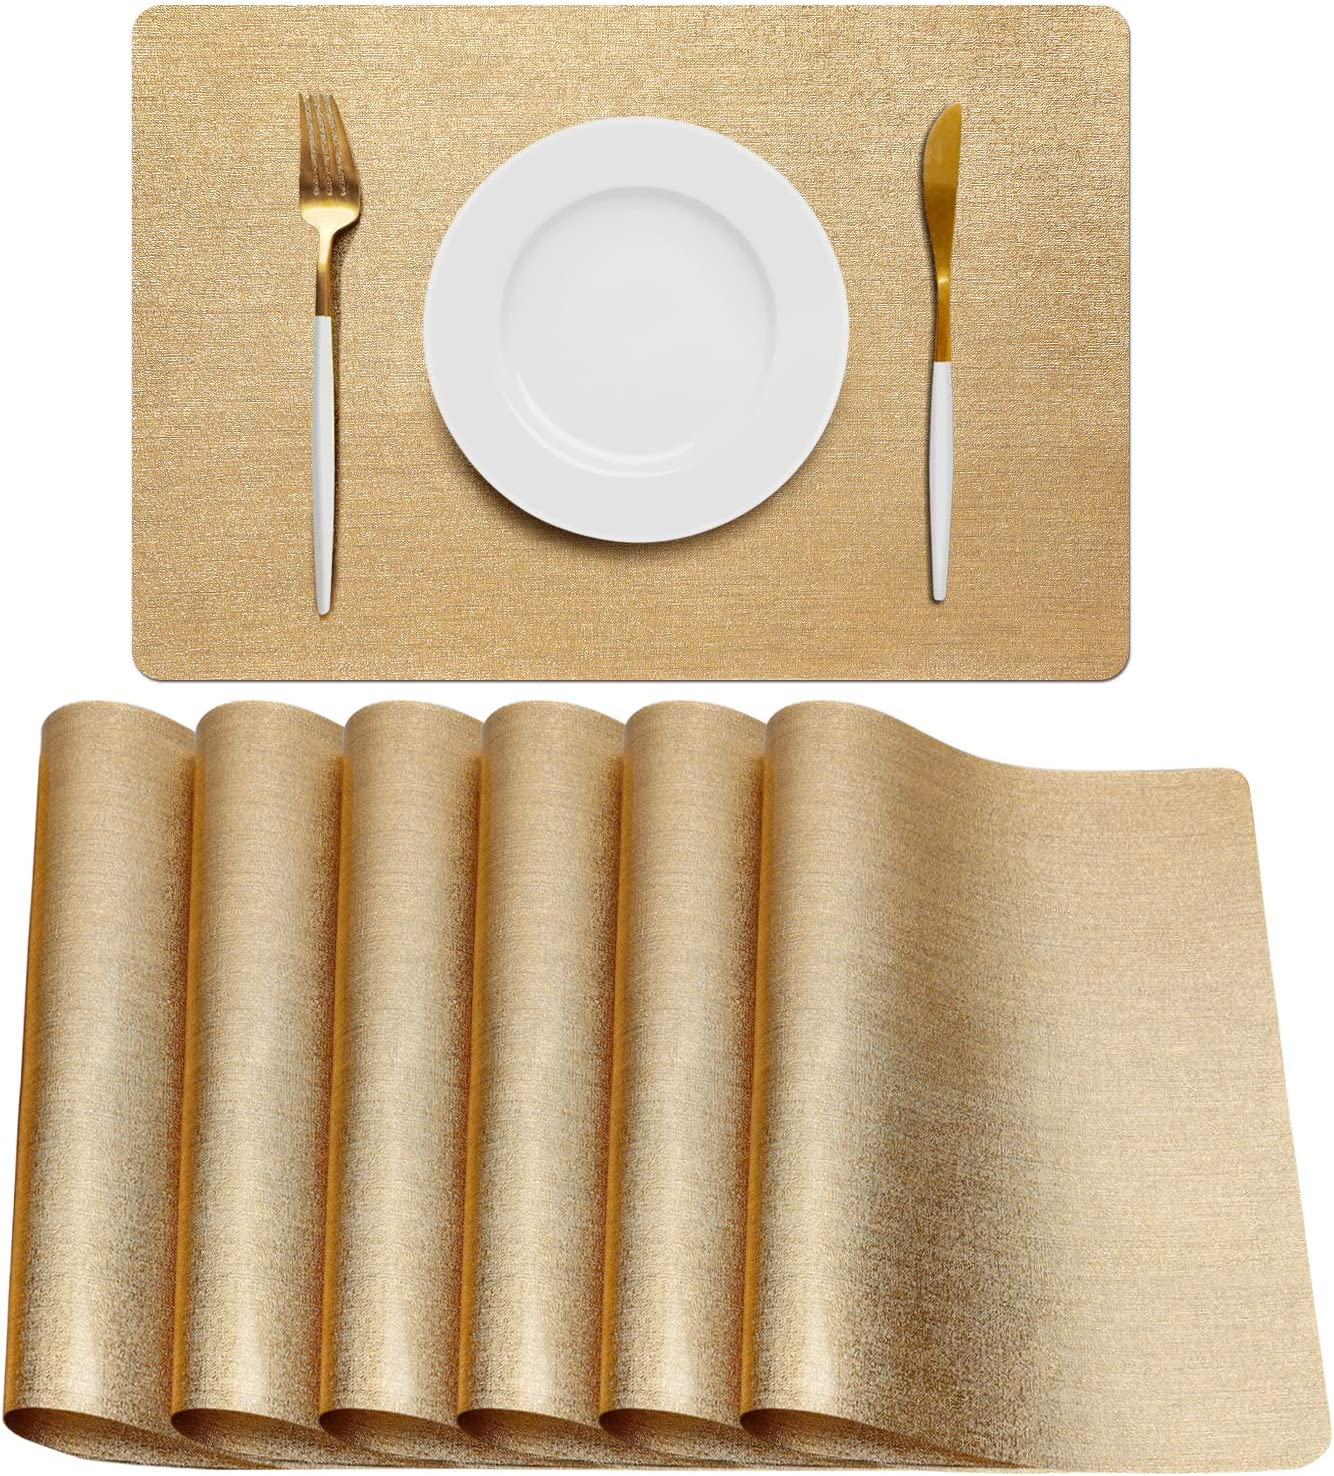 AIRCOWRIE Placemats for Dining Table Set of 6, Heat-Resistant Placemat Washable Vinyl Table Mats for Kitchen Restaurant (Gold)